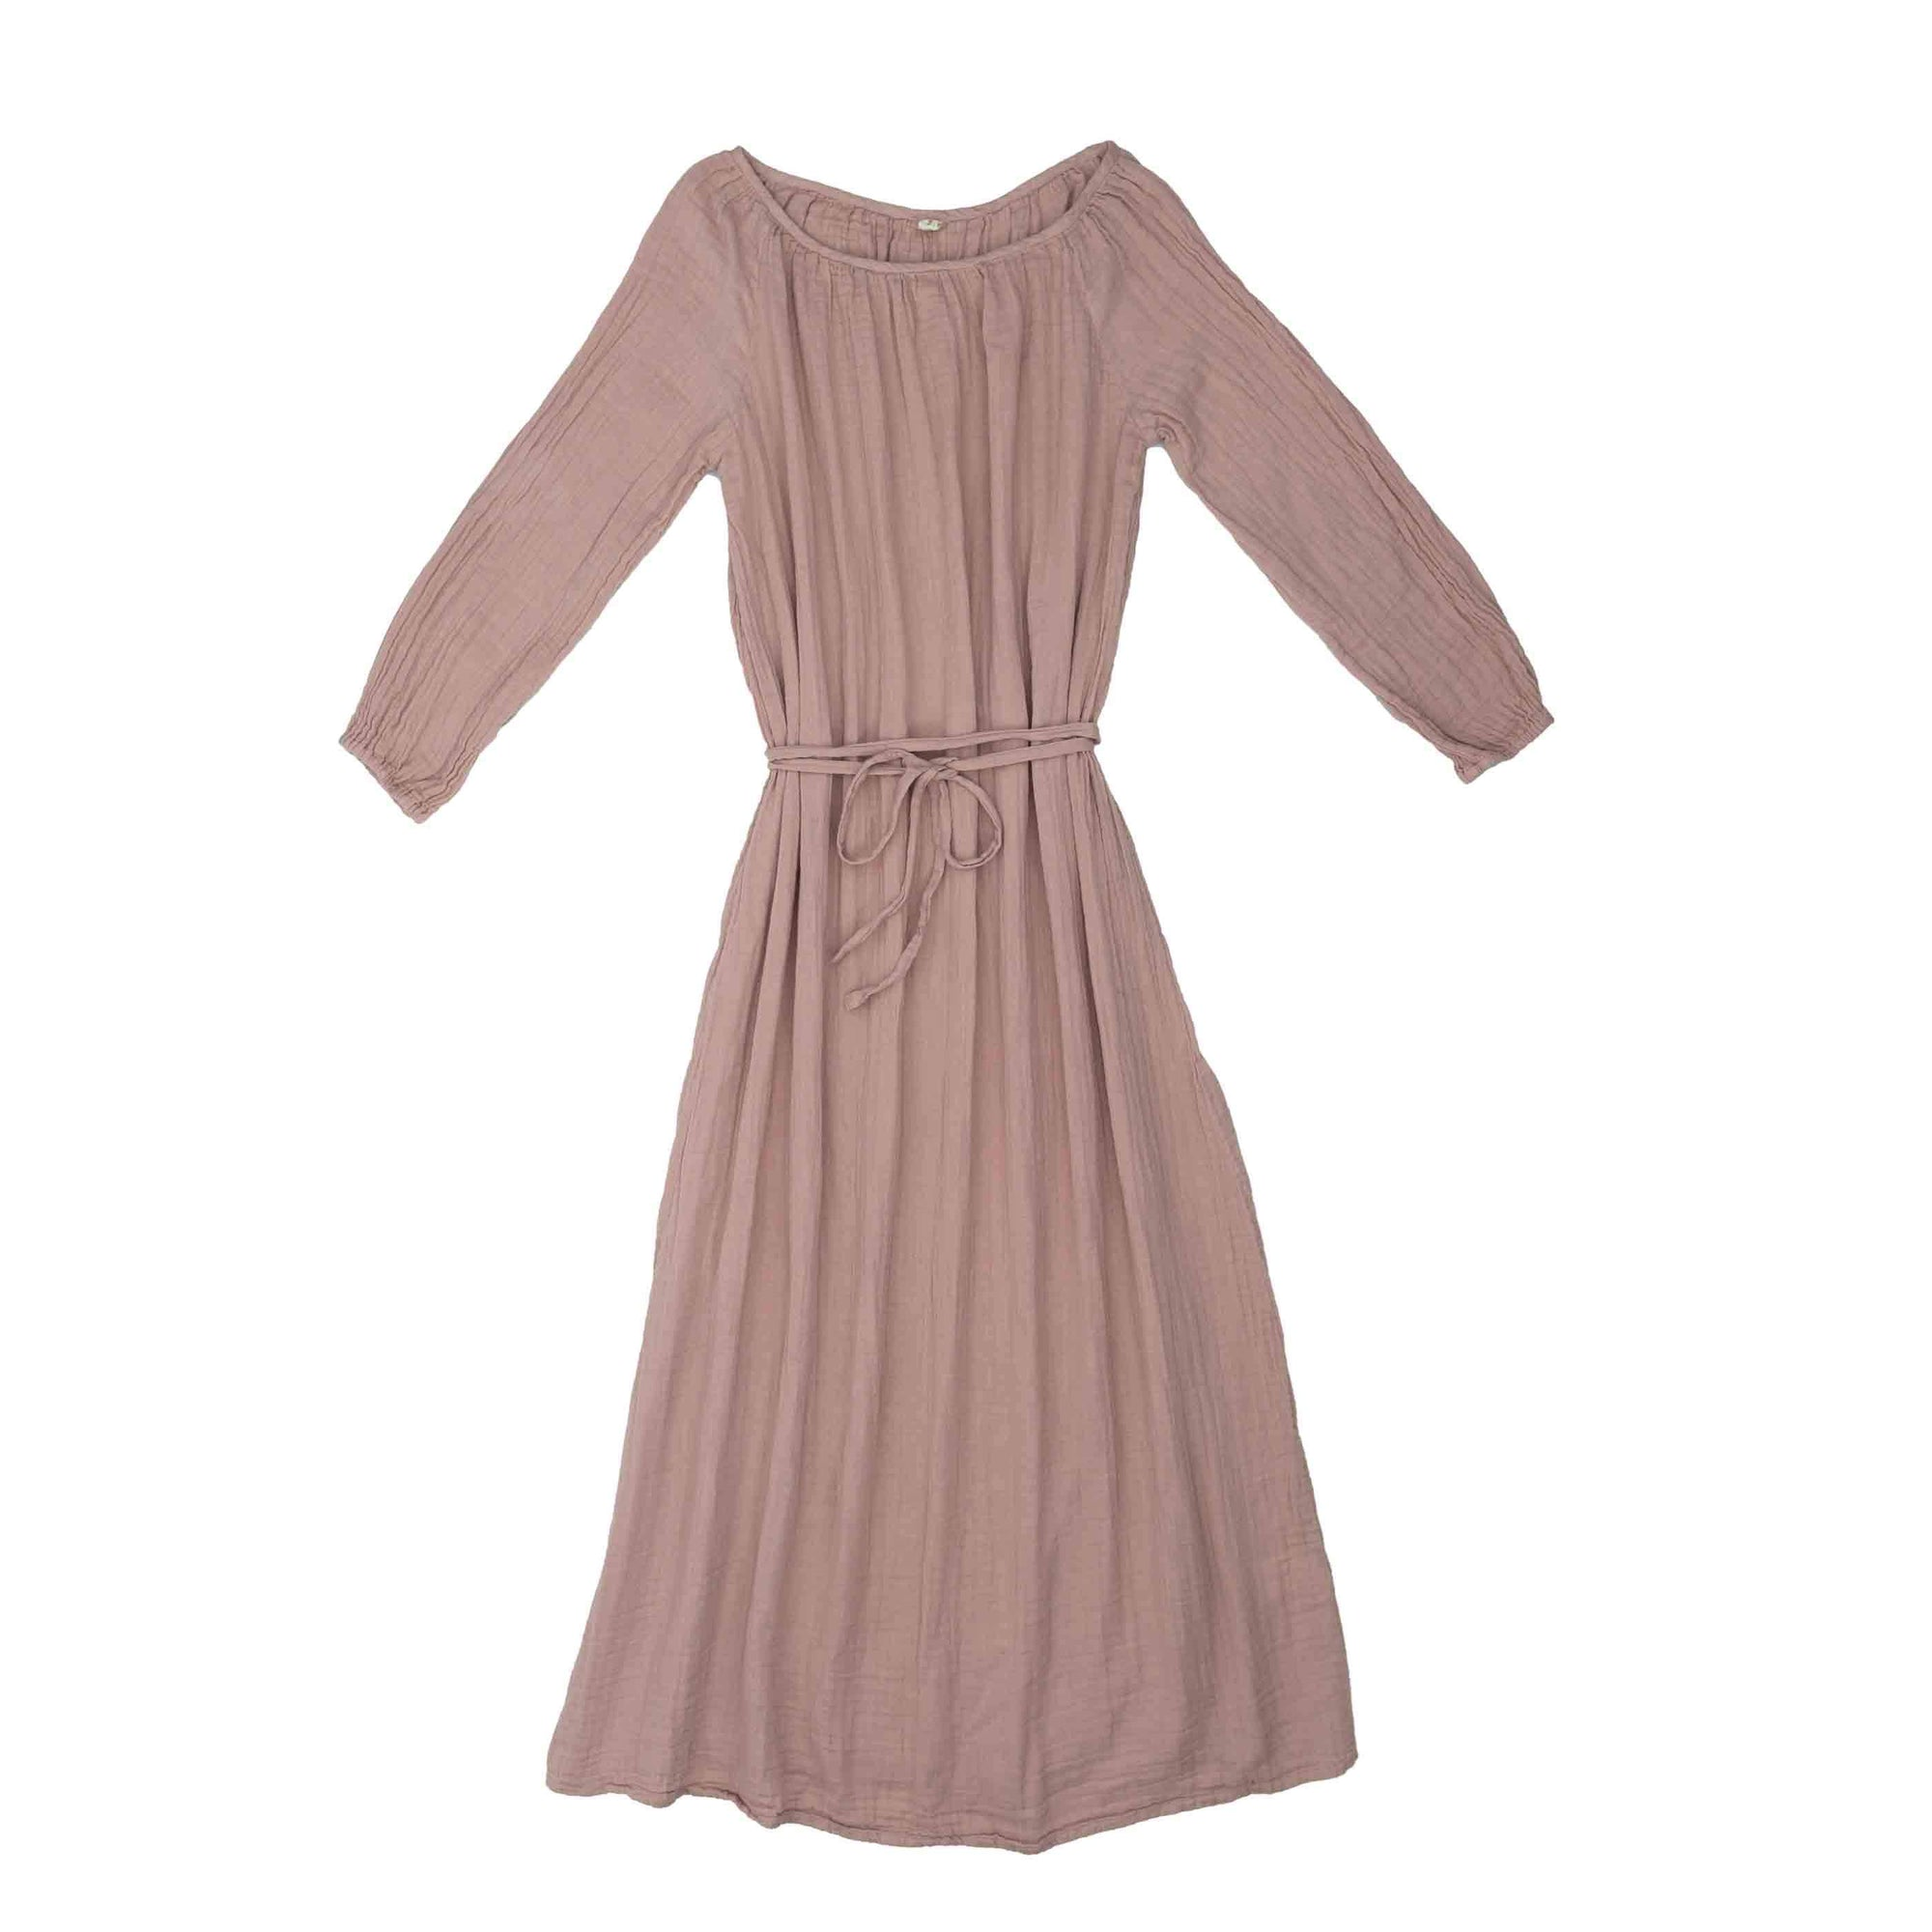 Numero 74 Nina Dress Long Women's Dusty Pink Womens Dresses - Tiny People Cool Kids Clothes